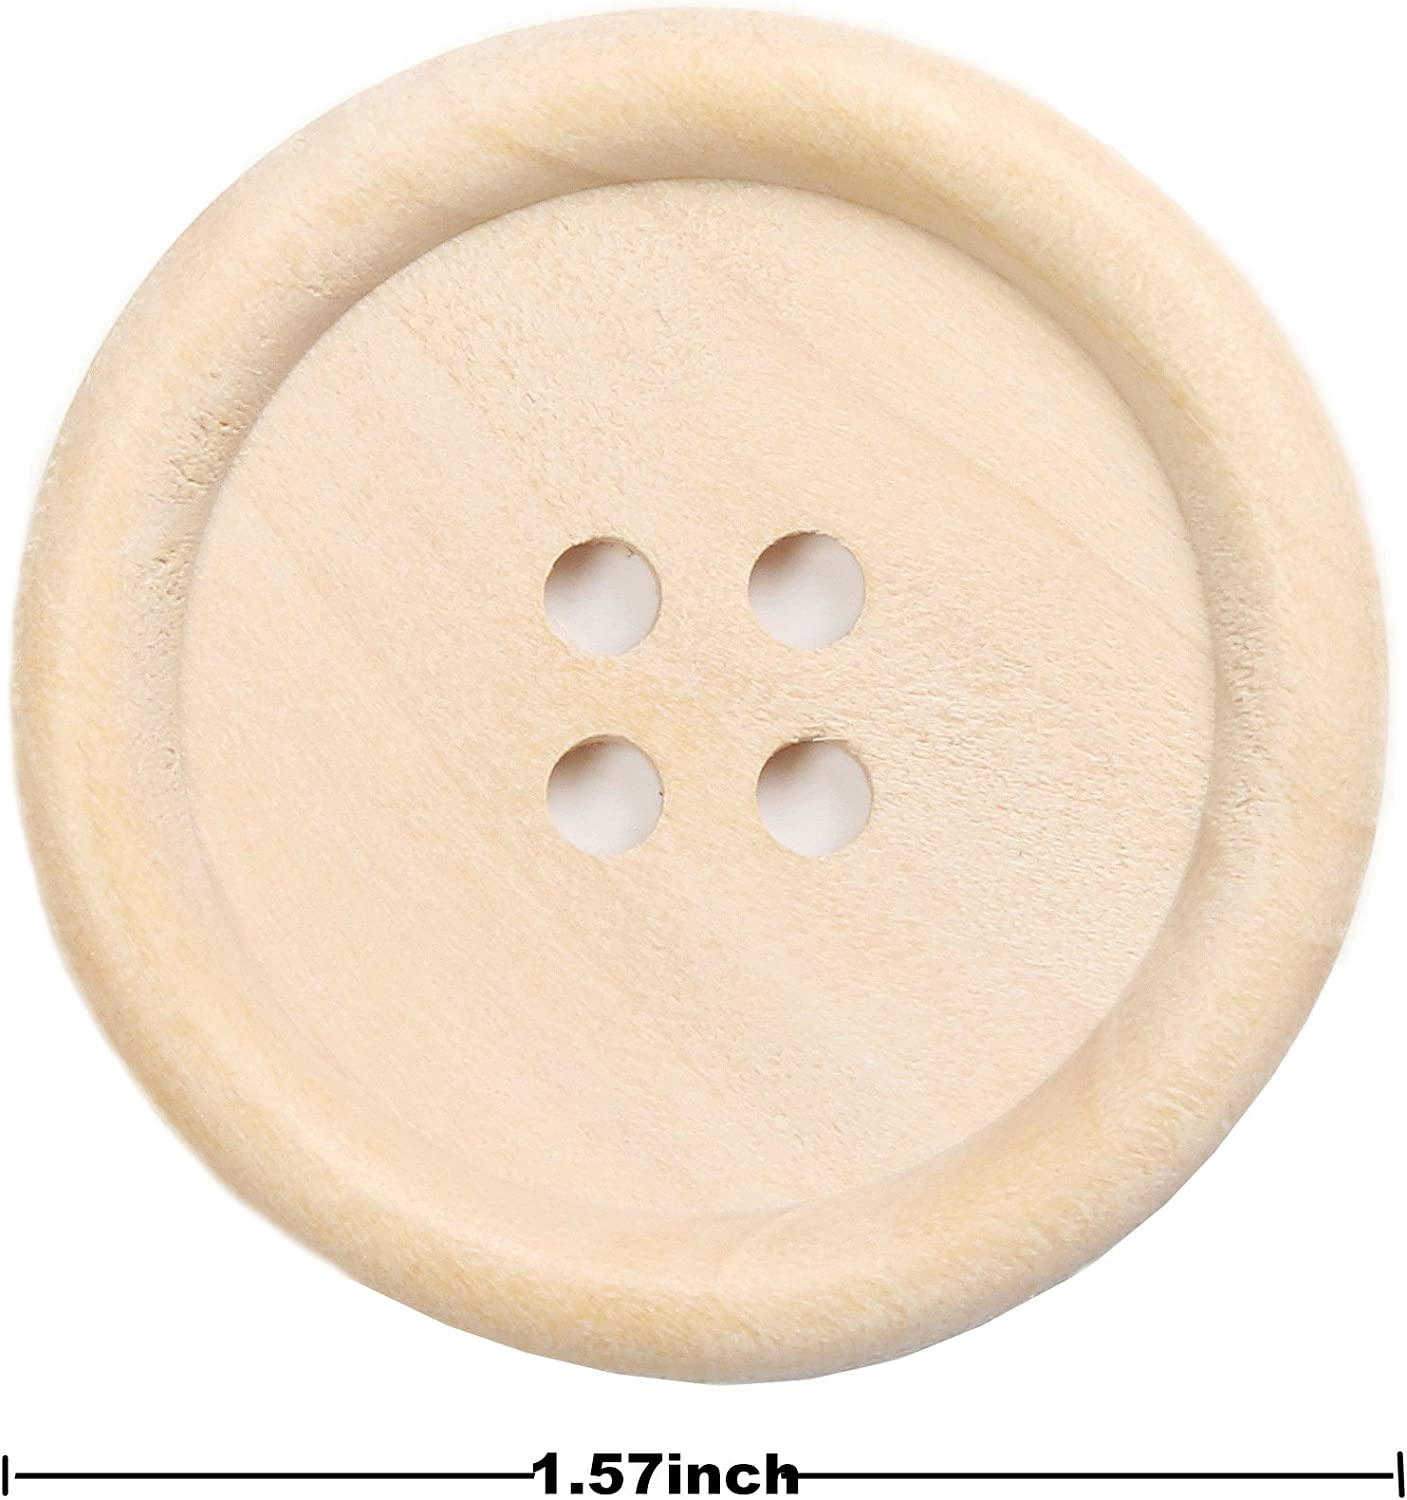 YAKA 40pcs Round Wood Buttons 4 Holes,Craft Buttons for Sewing Clothing,Sewing Buttons for Crafts Size1.5inch Style1